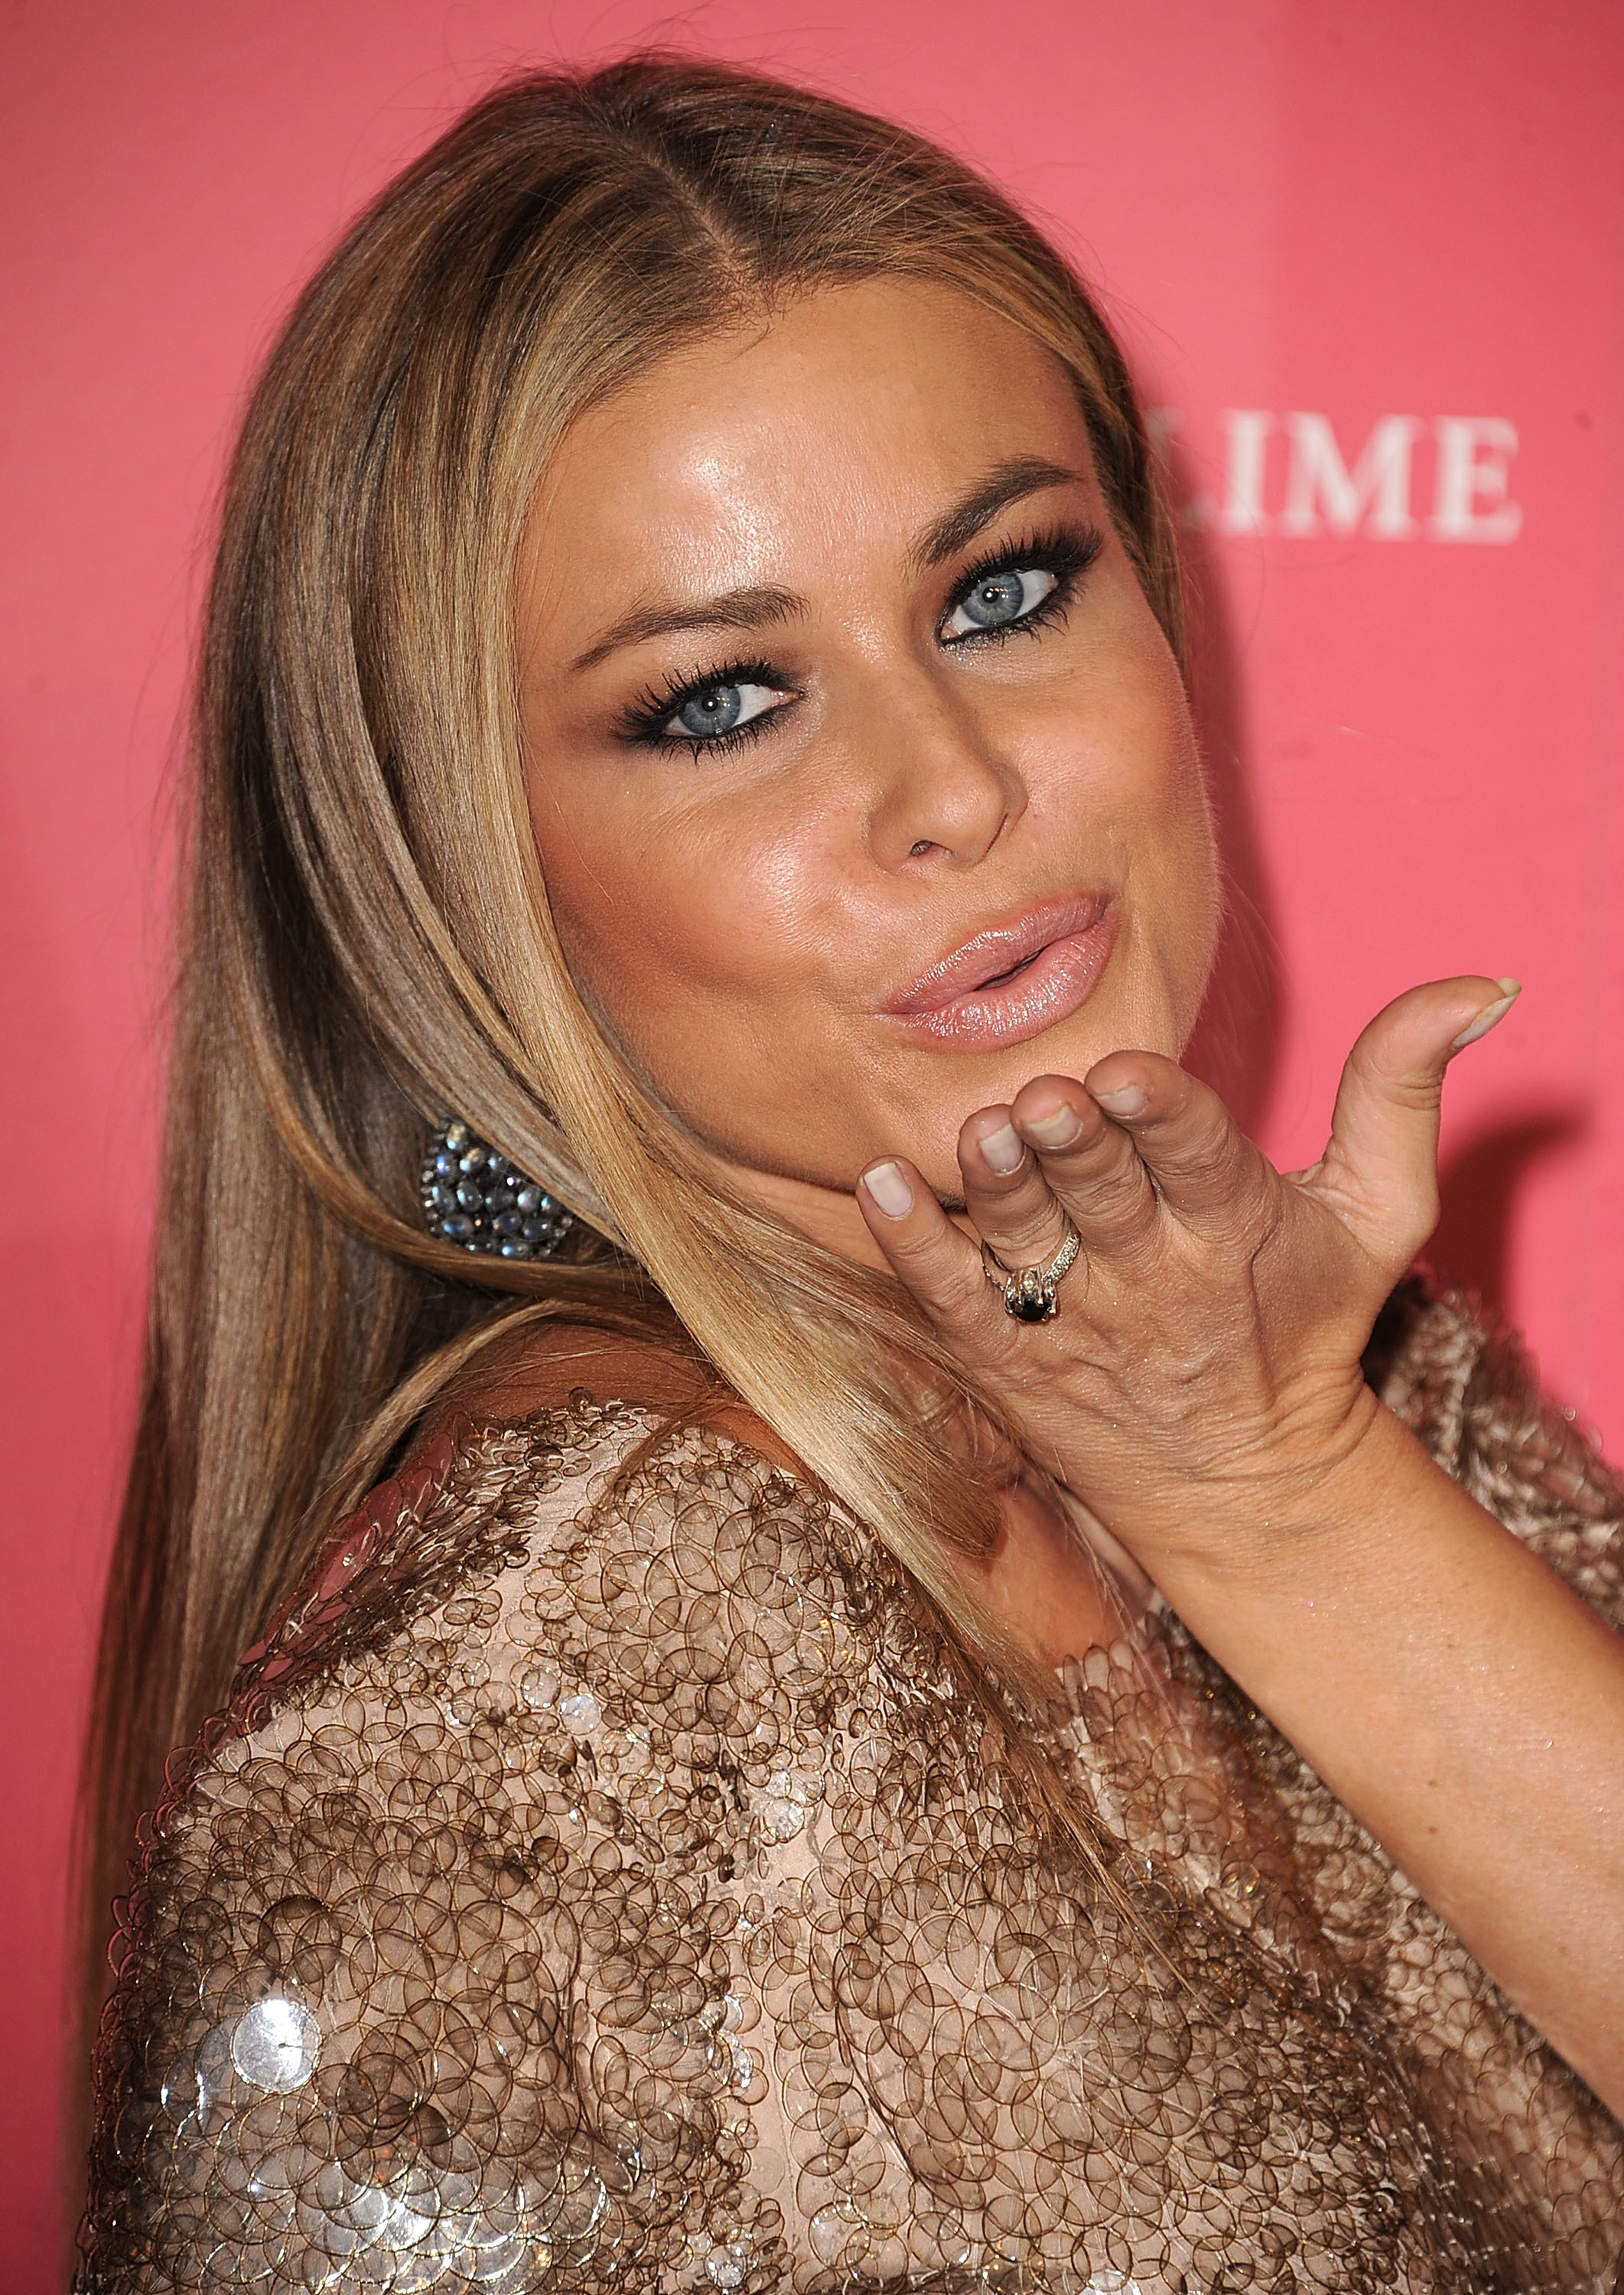 Carmen Electra blows a kiss